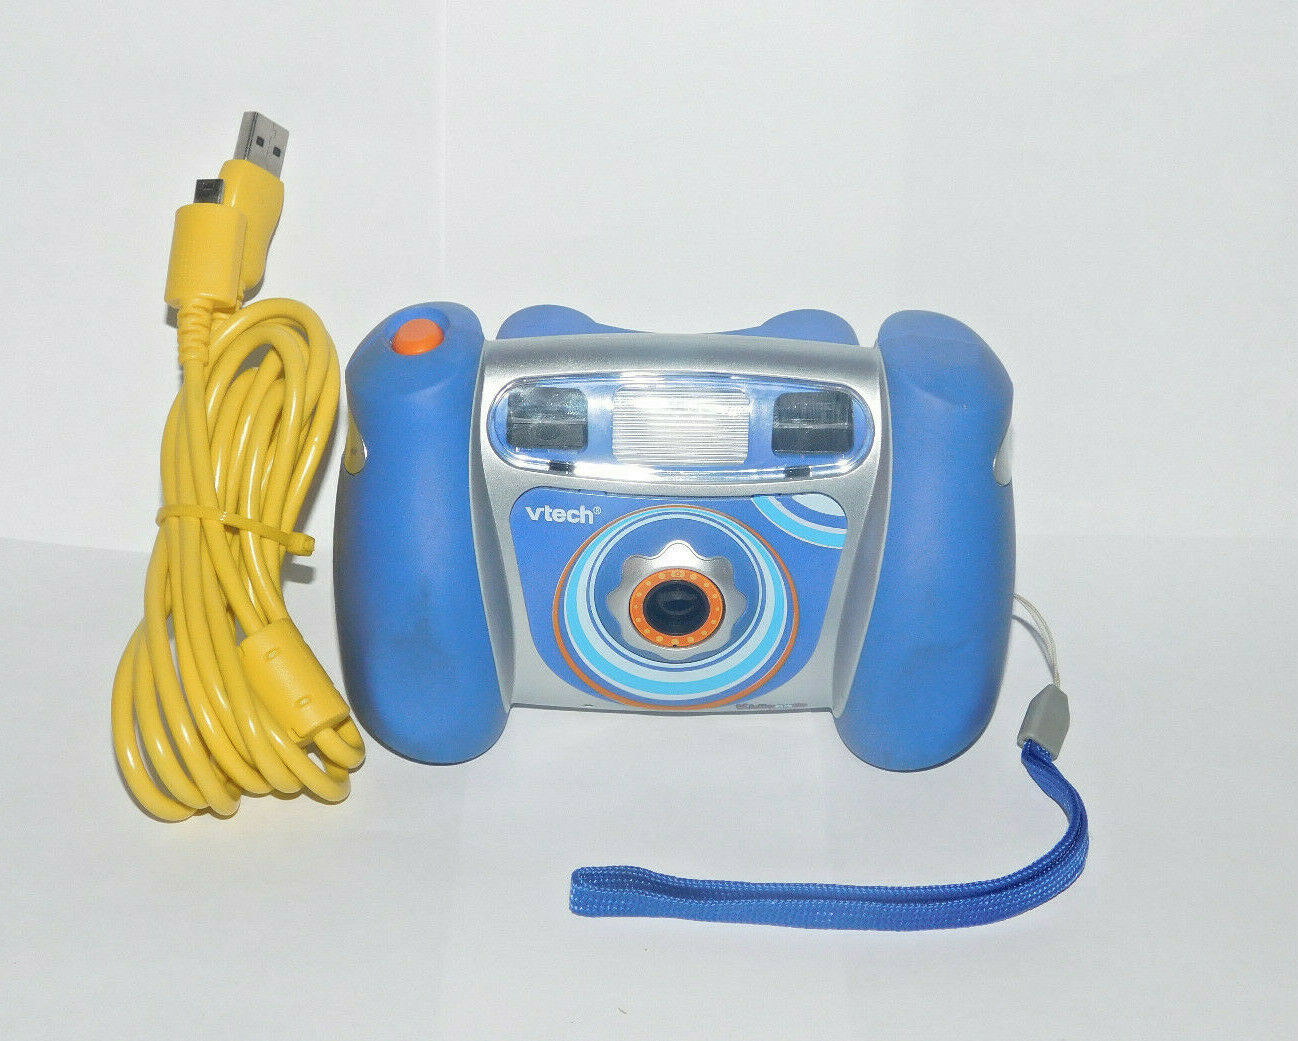 Primary image for Vtech Kidizoom Camera for Kids Purple Tested & Works with Yellow USB Cable Fun